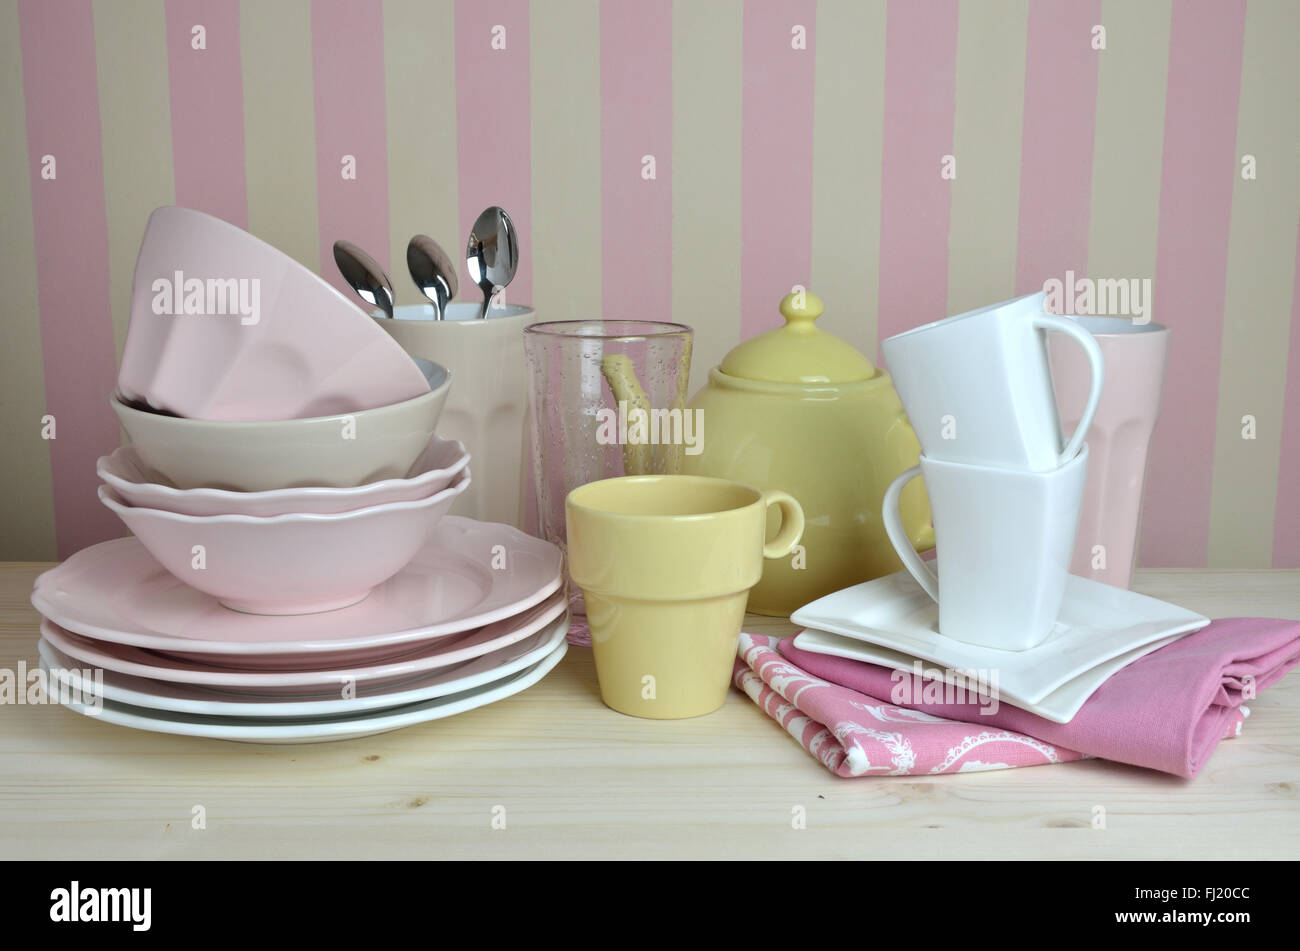 Crockery in pink, yellow and white color on kitchen desk with